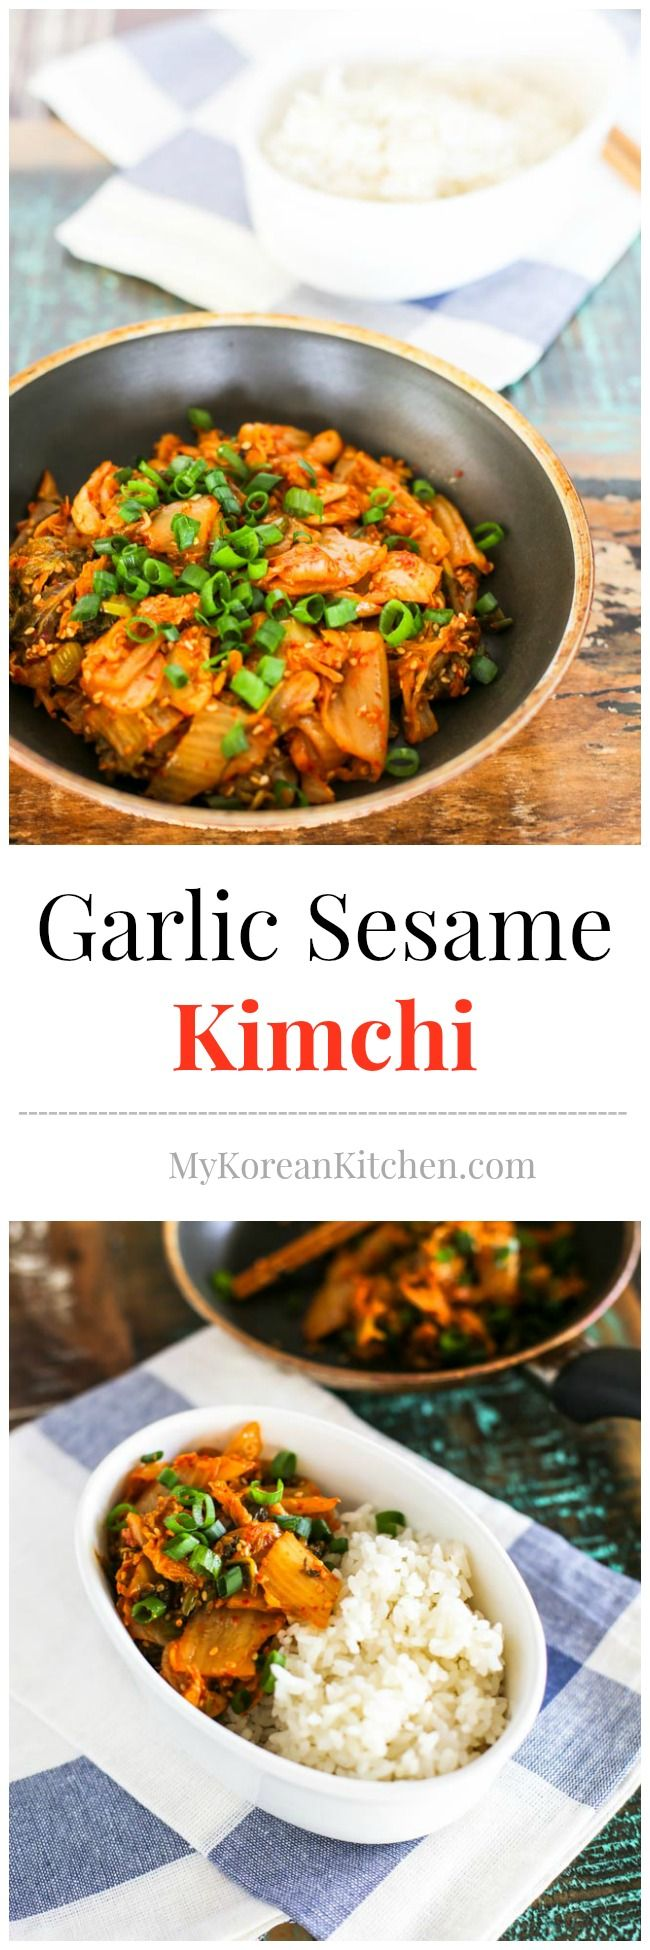 Garlic Sesame Kimchi: A simple, quick and easy to make Korean side dish that can transform your aged pungent Kimchi into a nutty aromatic relish | MyKoreanKitchen.com